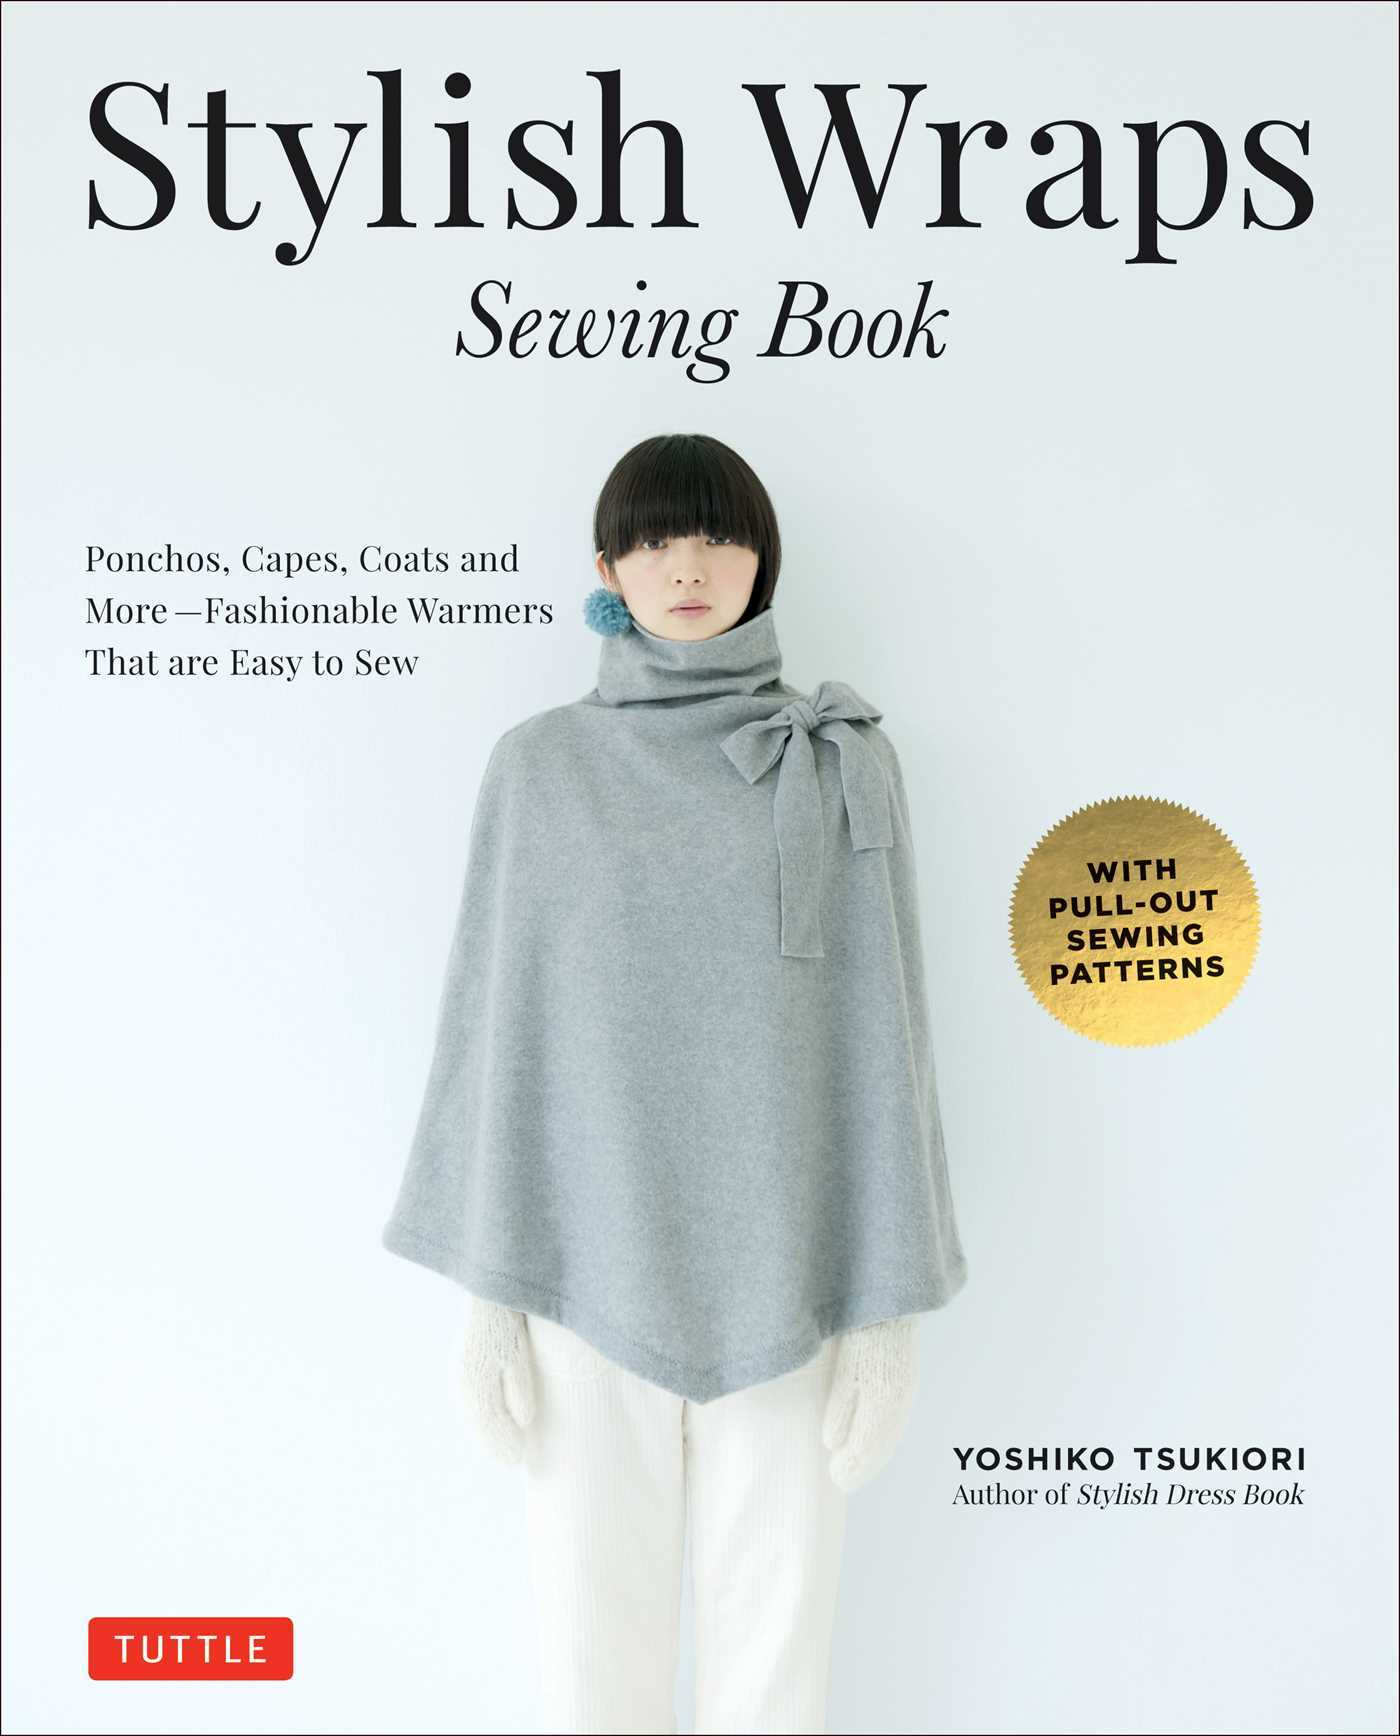 Stylish Wraps Sewing Book: Ponchos, Capes, Coats and More - Fashionable Warmers that are Easy to Sew